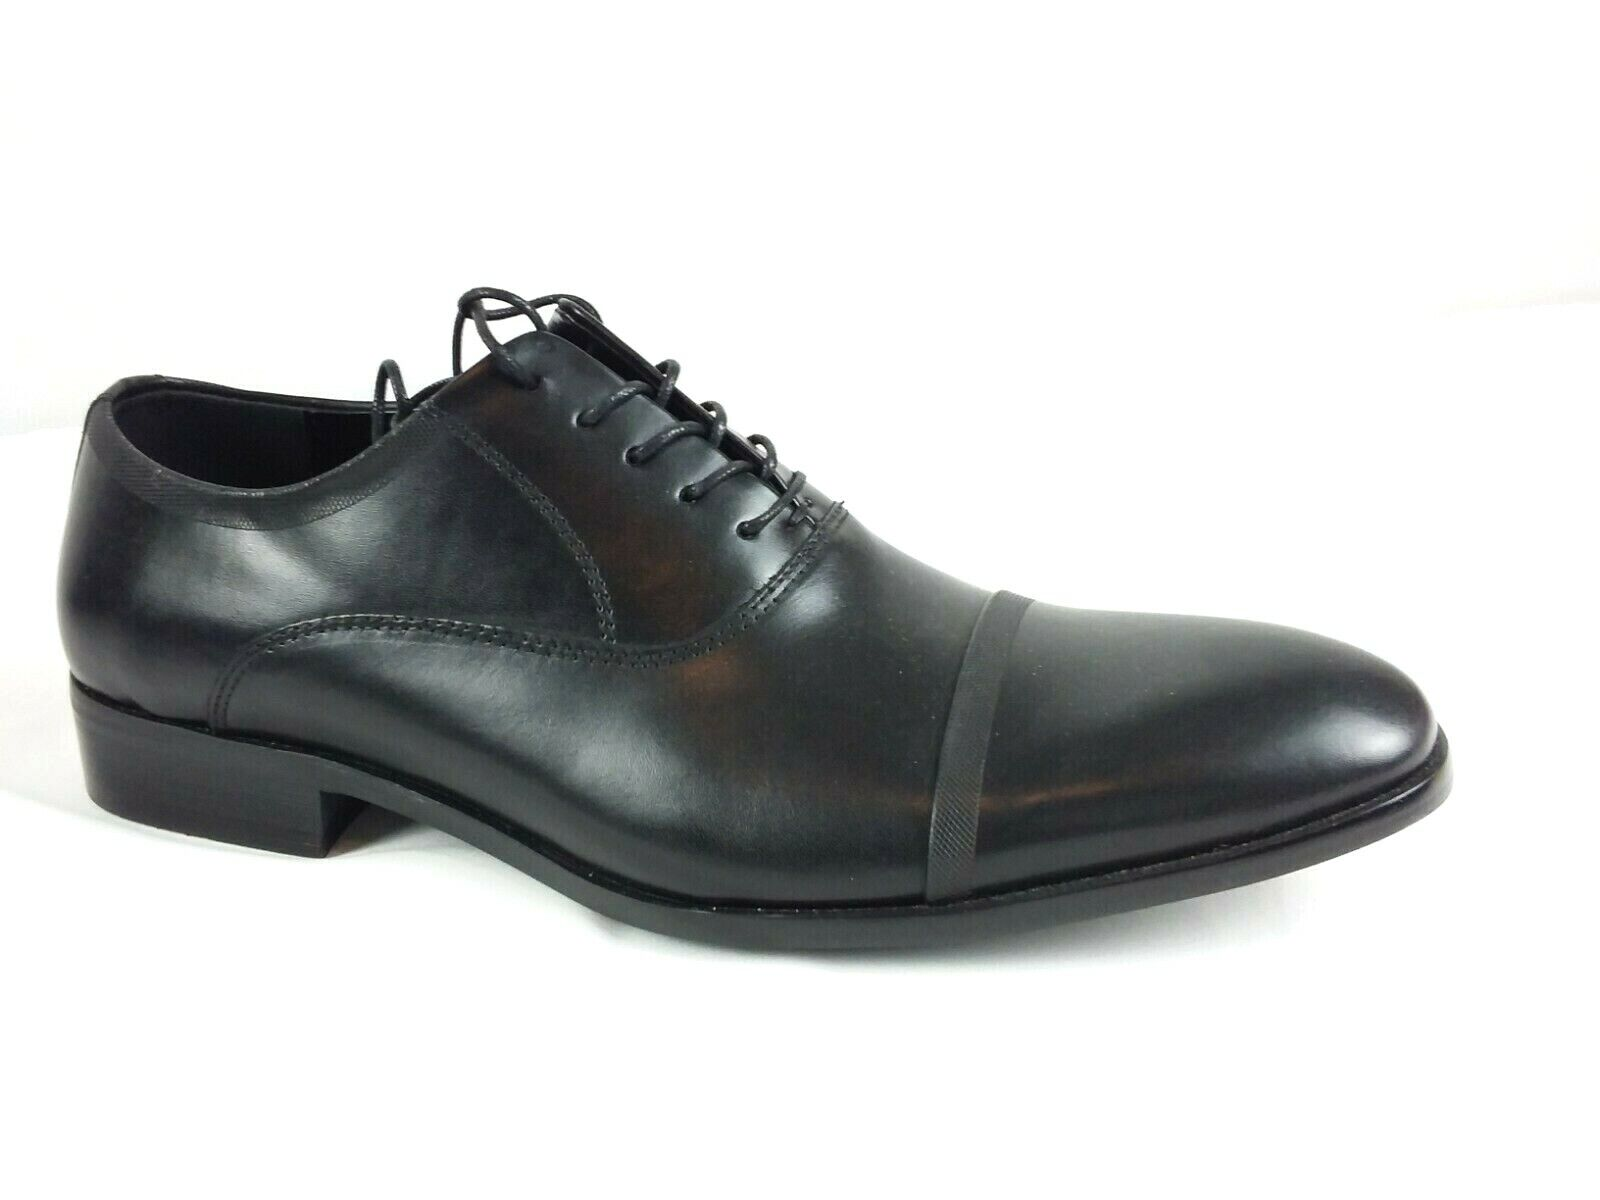 Kenneth Cole New York Men's Black Leather Classic Dress Shoes Size 10 M